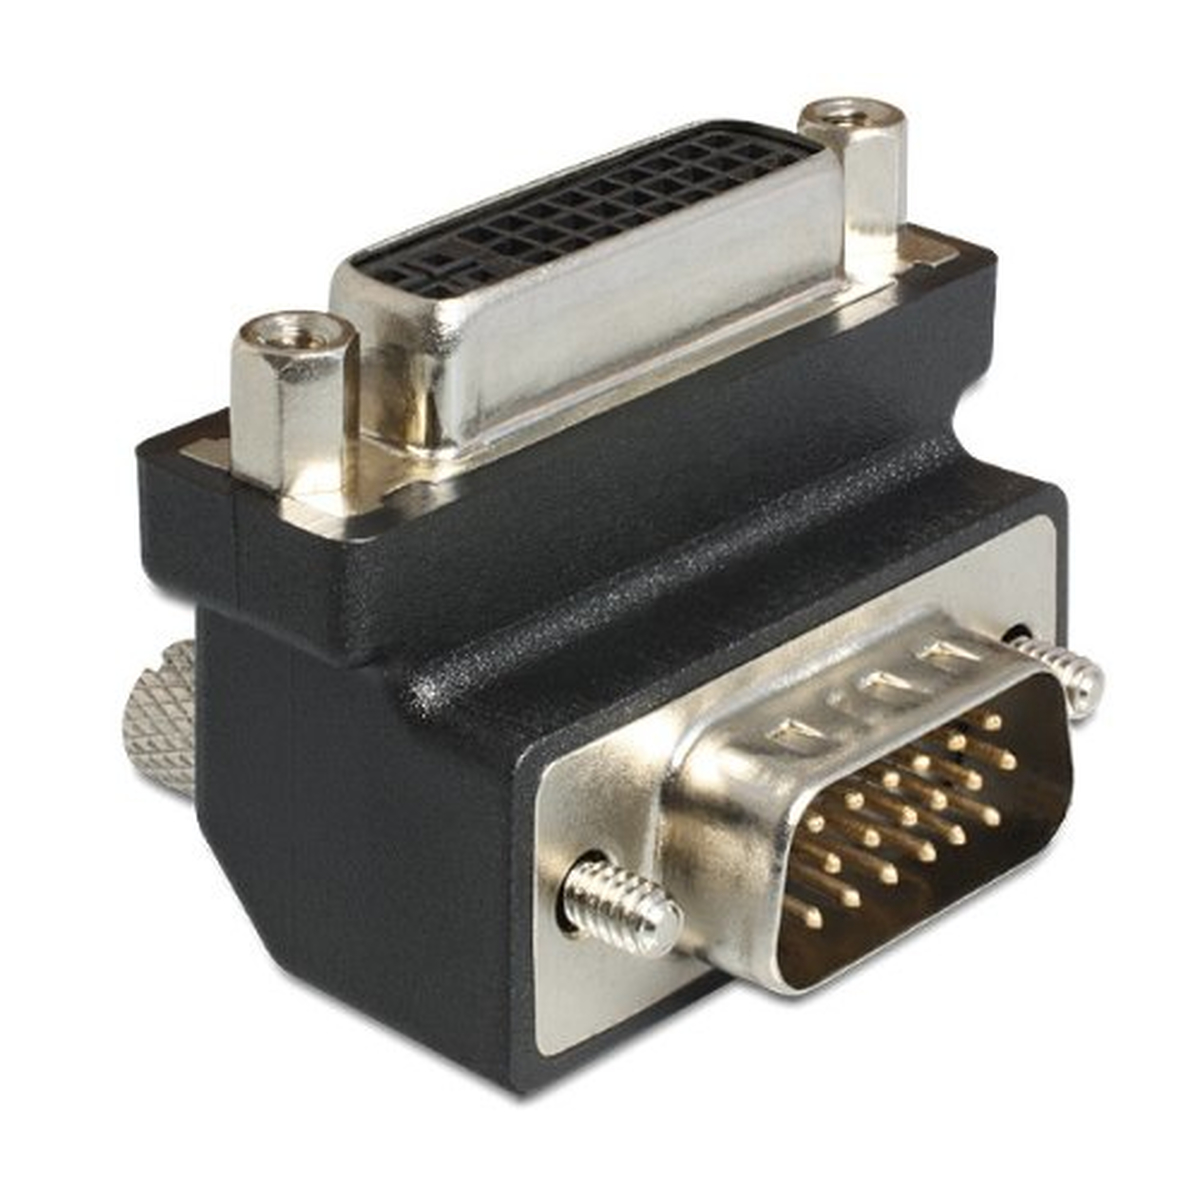 DeLOCK Adapter DVI 24+5 Pin Buchse > VGA 15 Pin